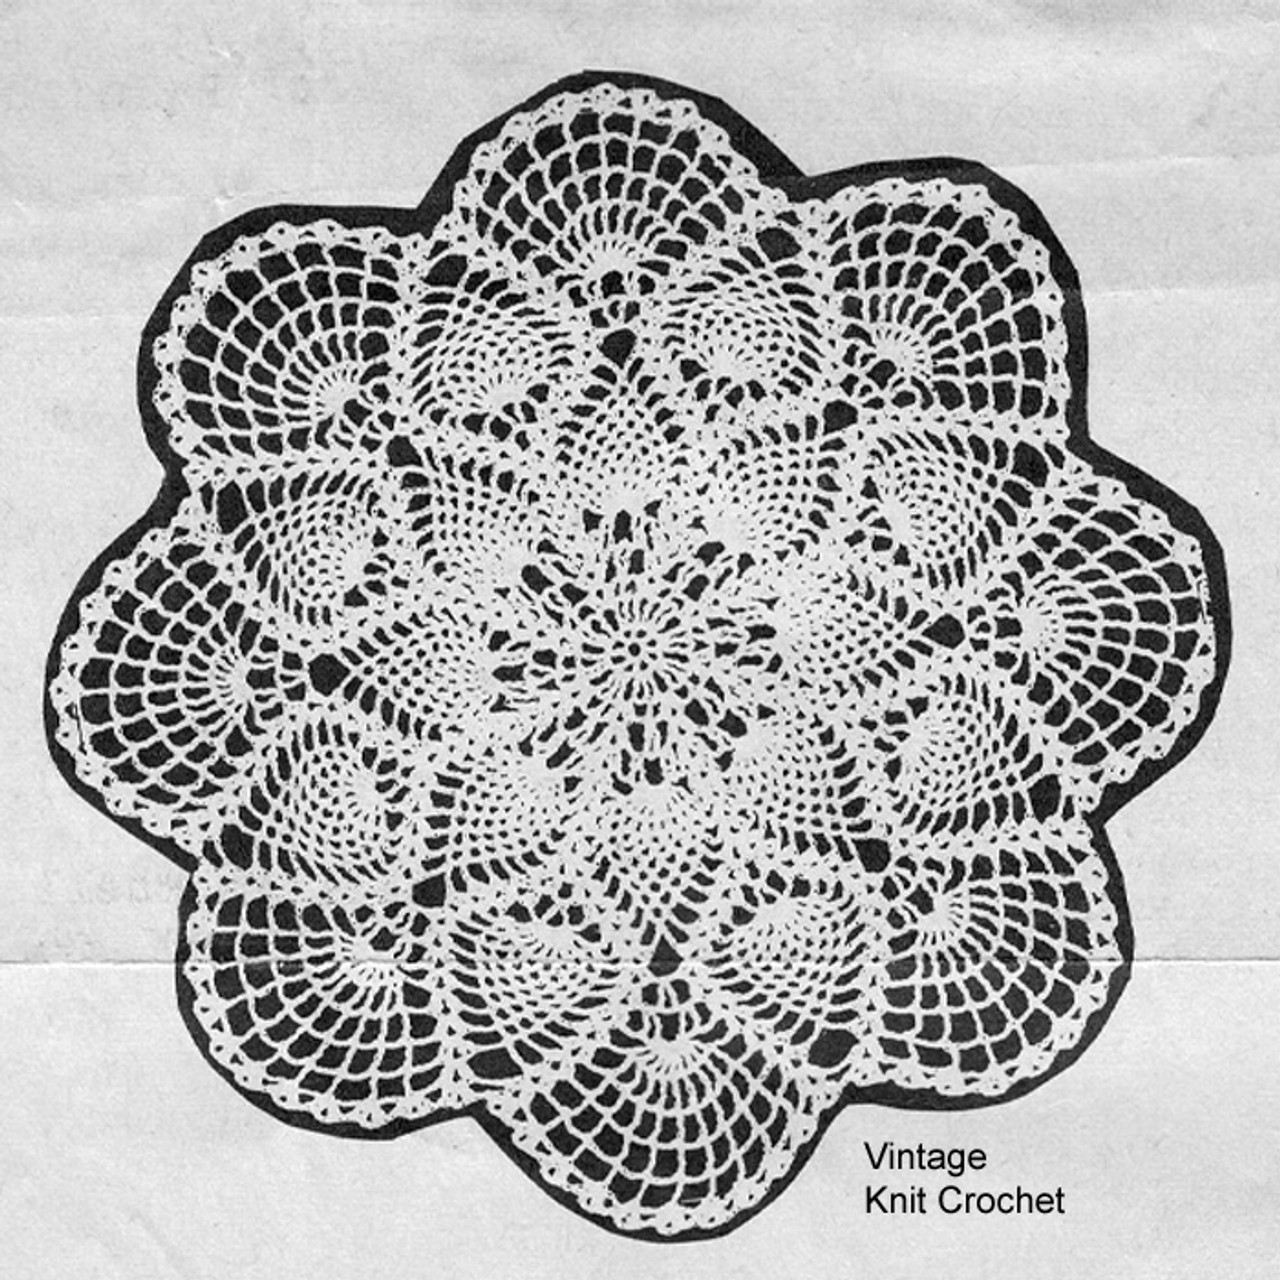 Round Crocheted Pineapple Doily Pattern, Mail Order 1250